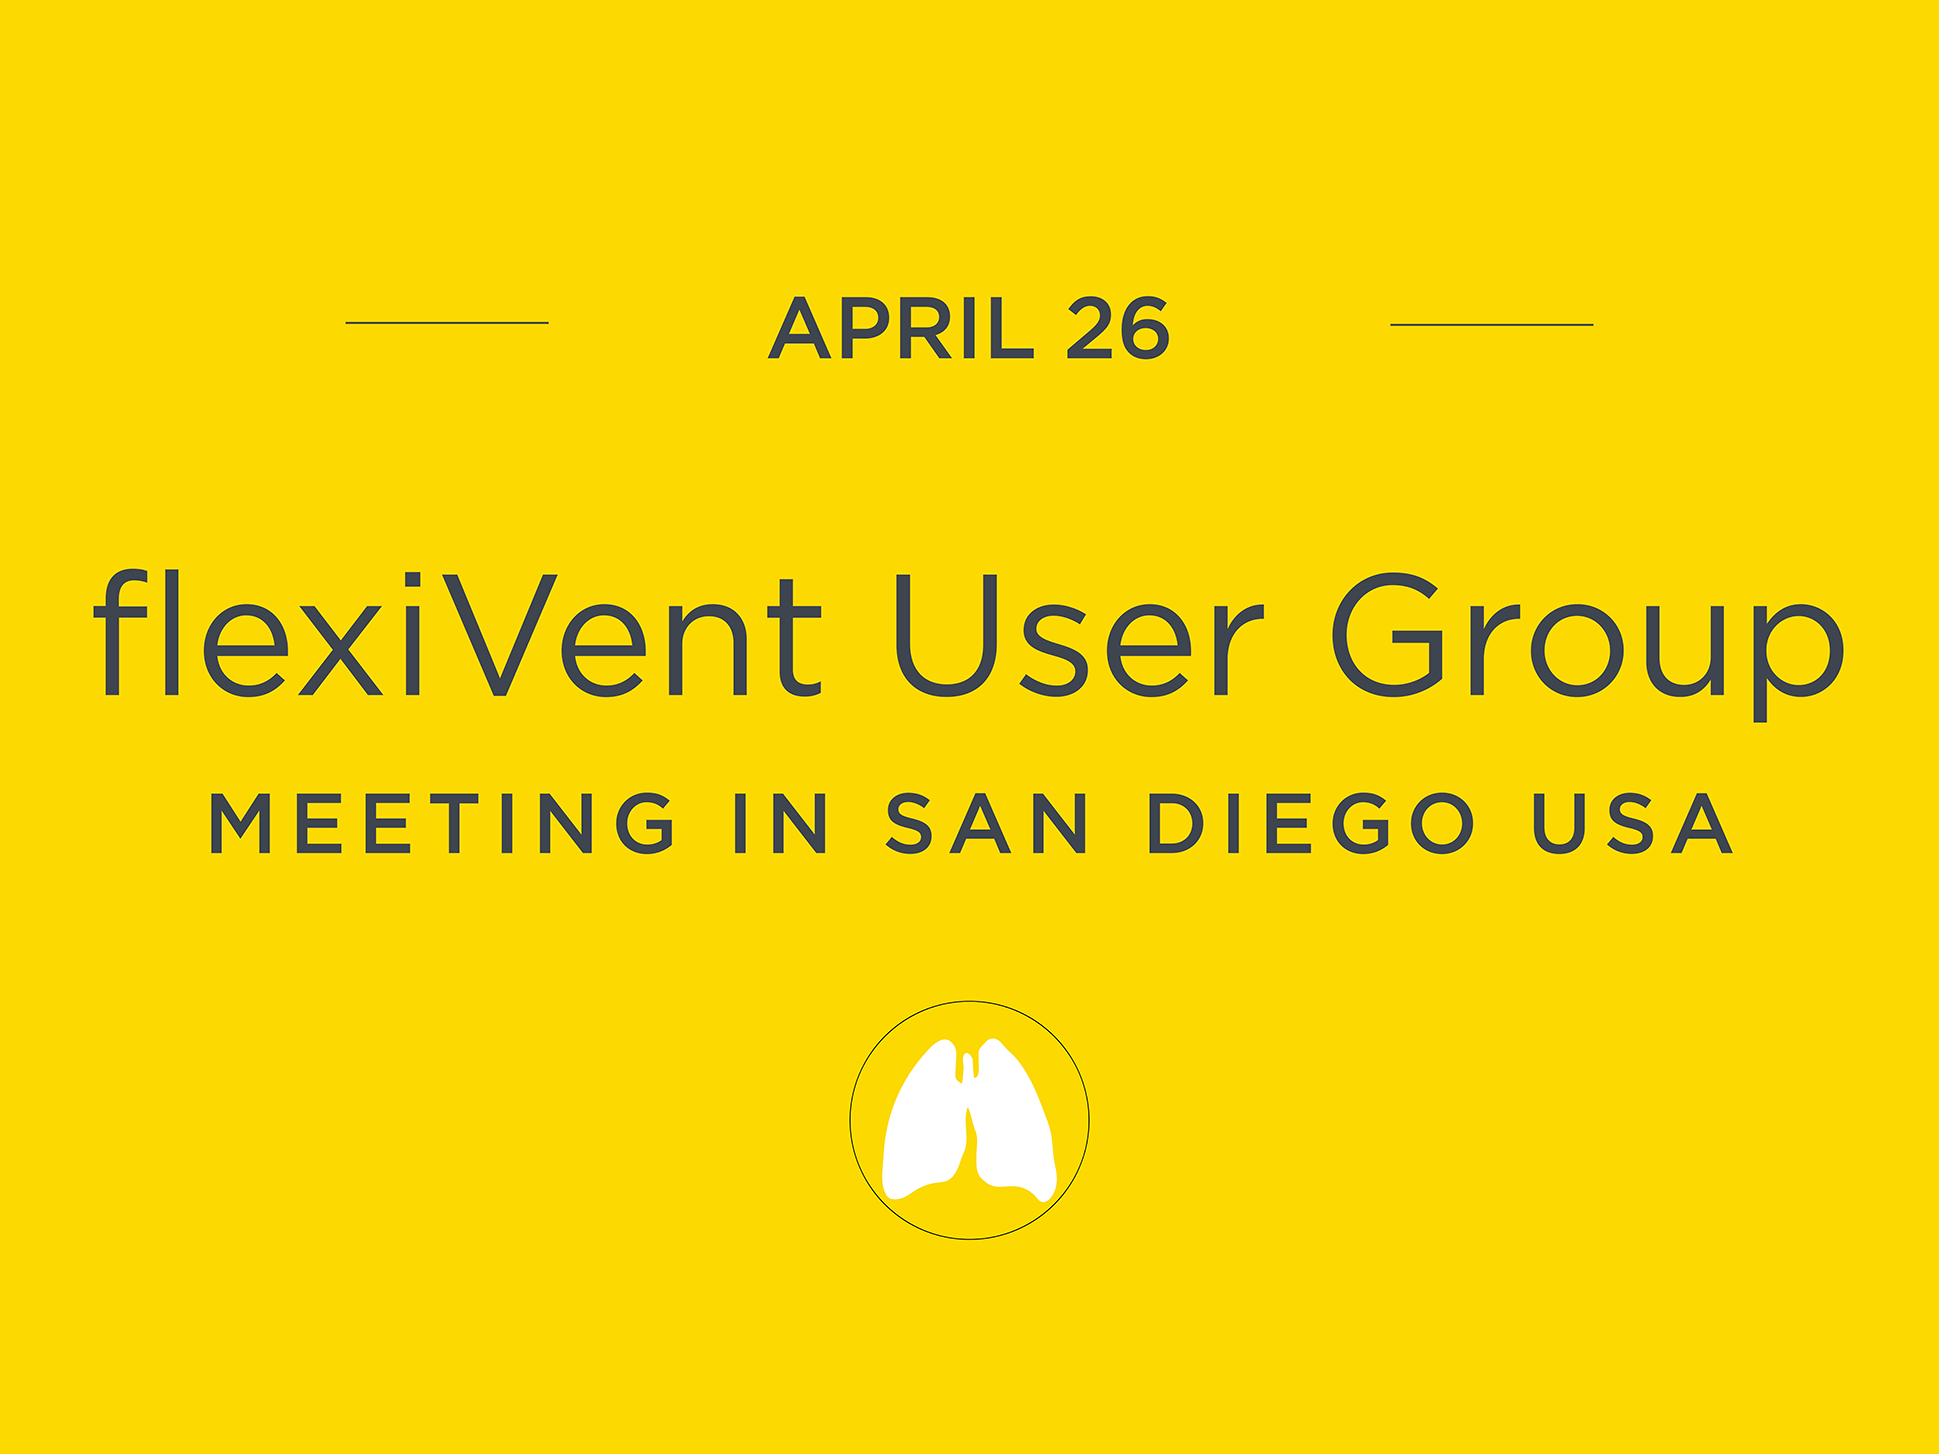 flexiVent User Group Meeting in San Diego flexiVent UGM2018 SanDiego USA